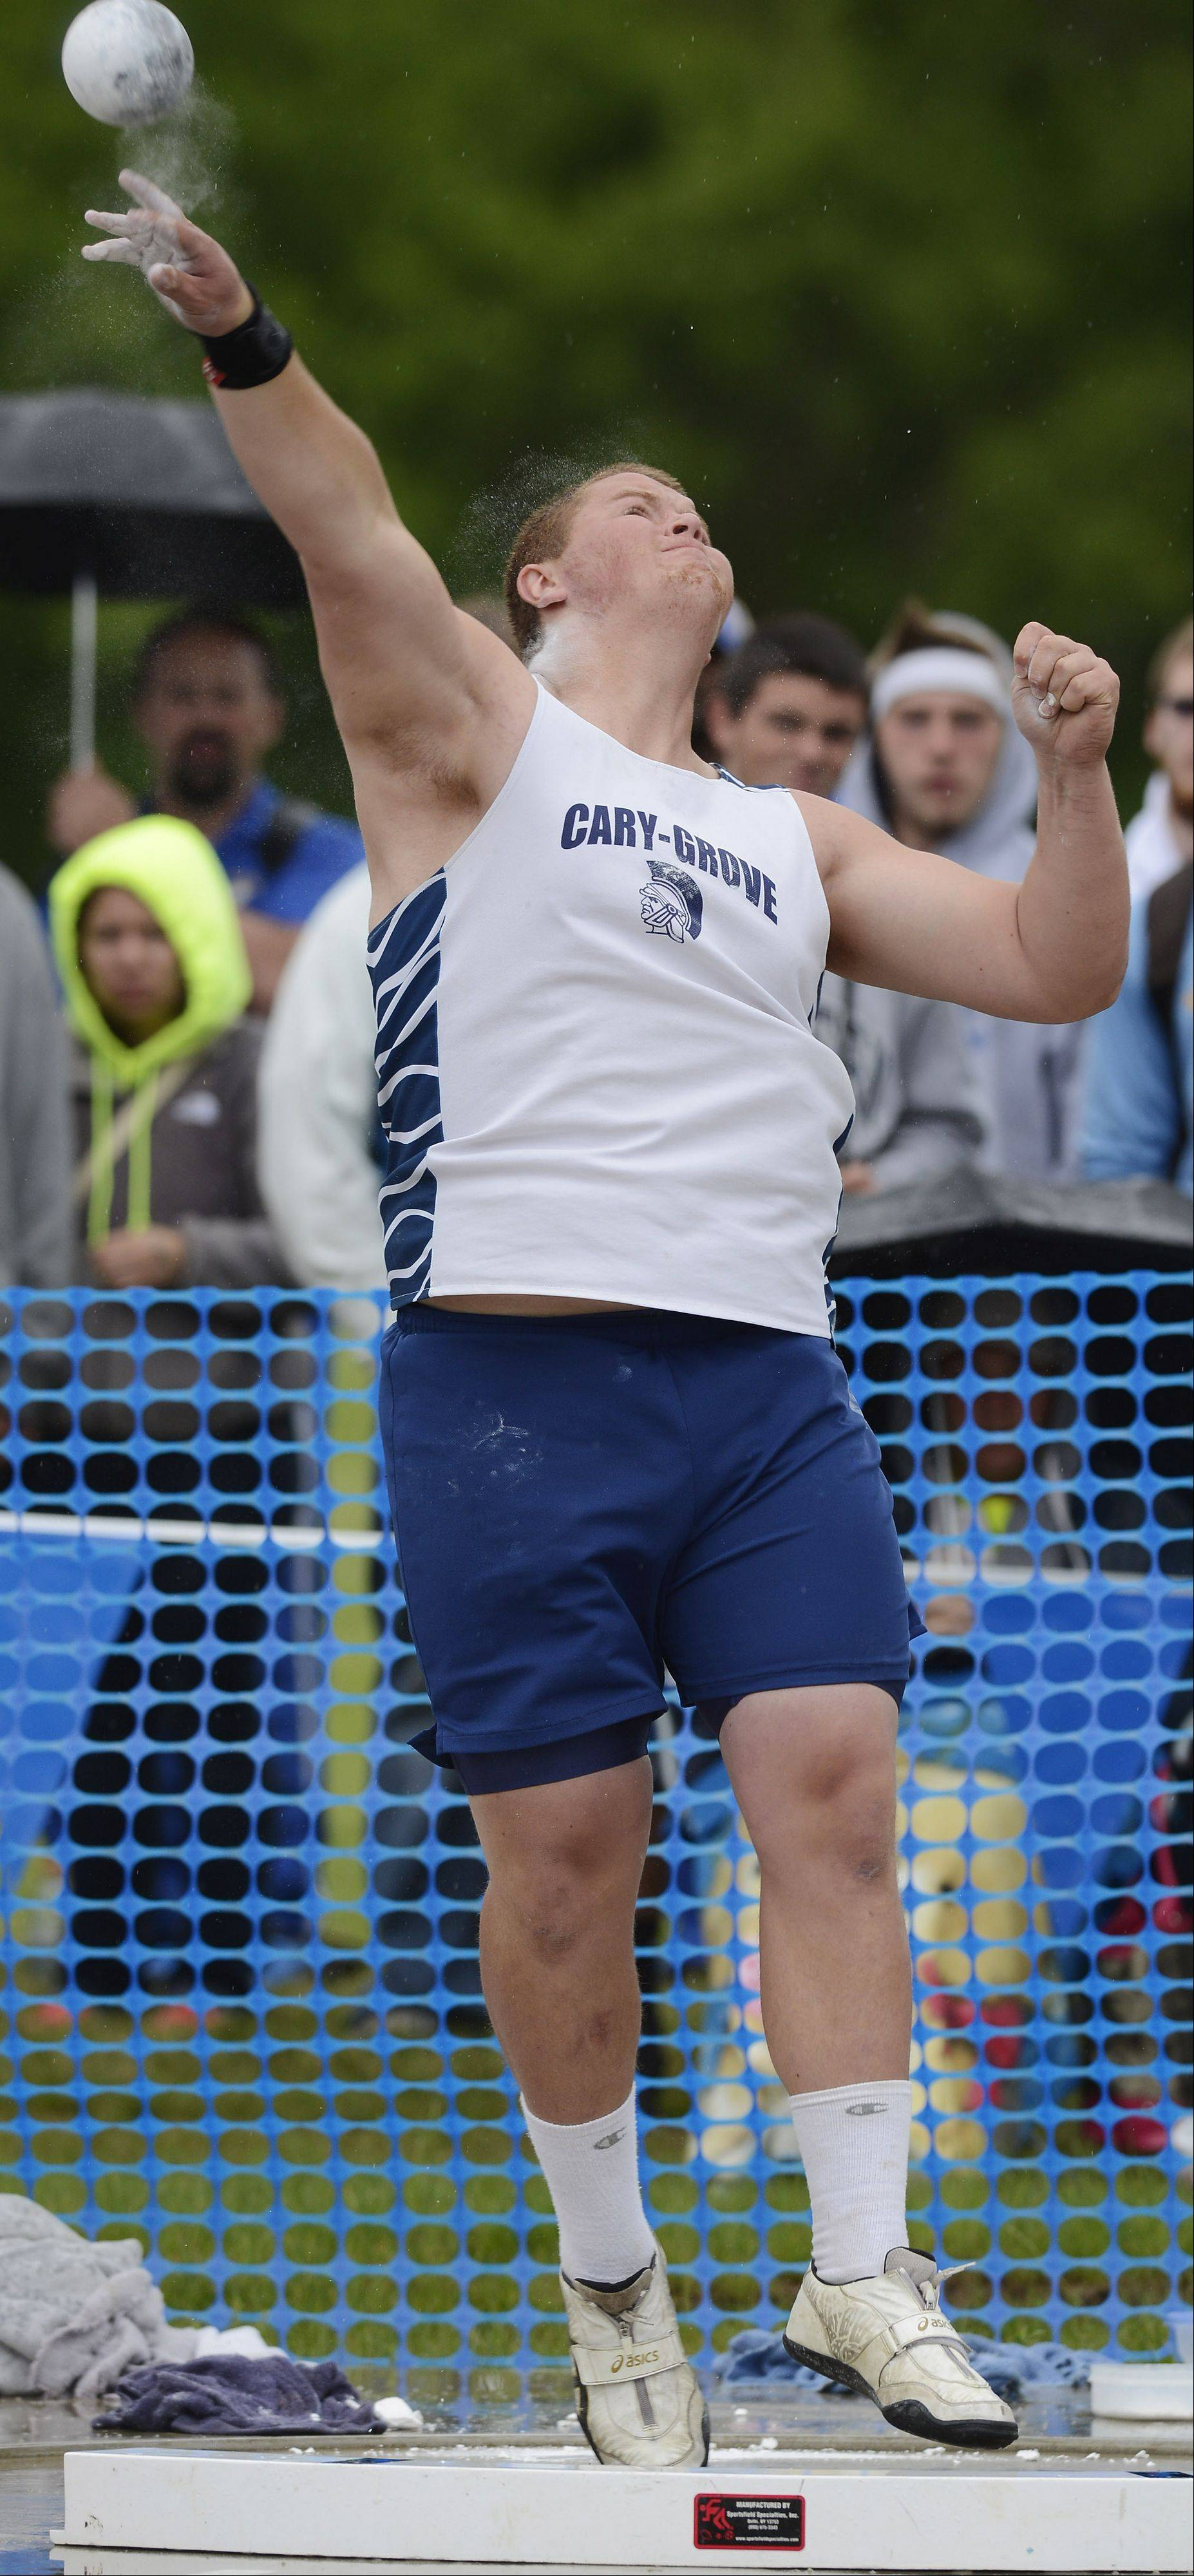 Cary-Grove's Ricky Hurley throws in the Class 3A shot put during the boys state track finals in Charleston Saturday.